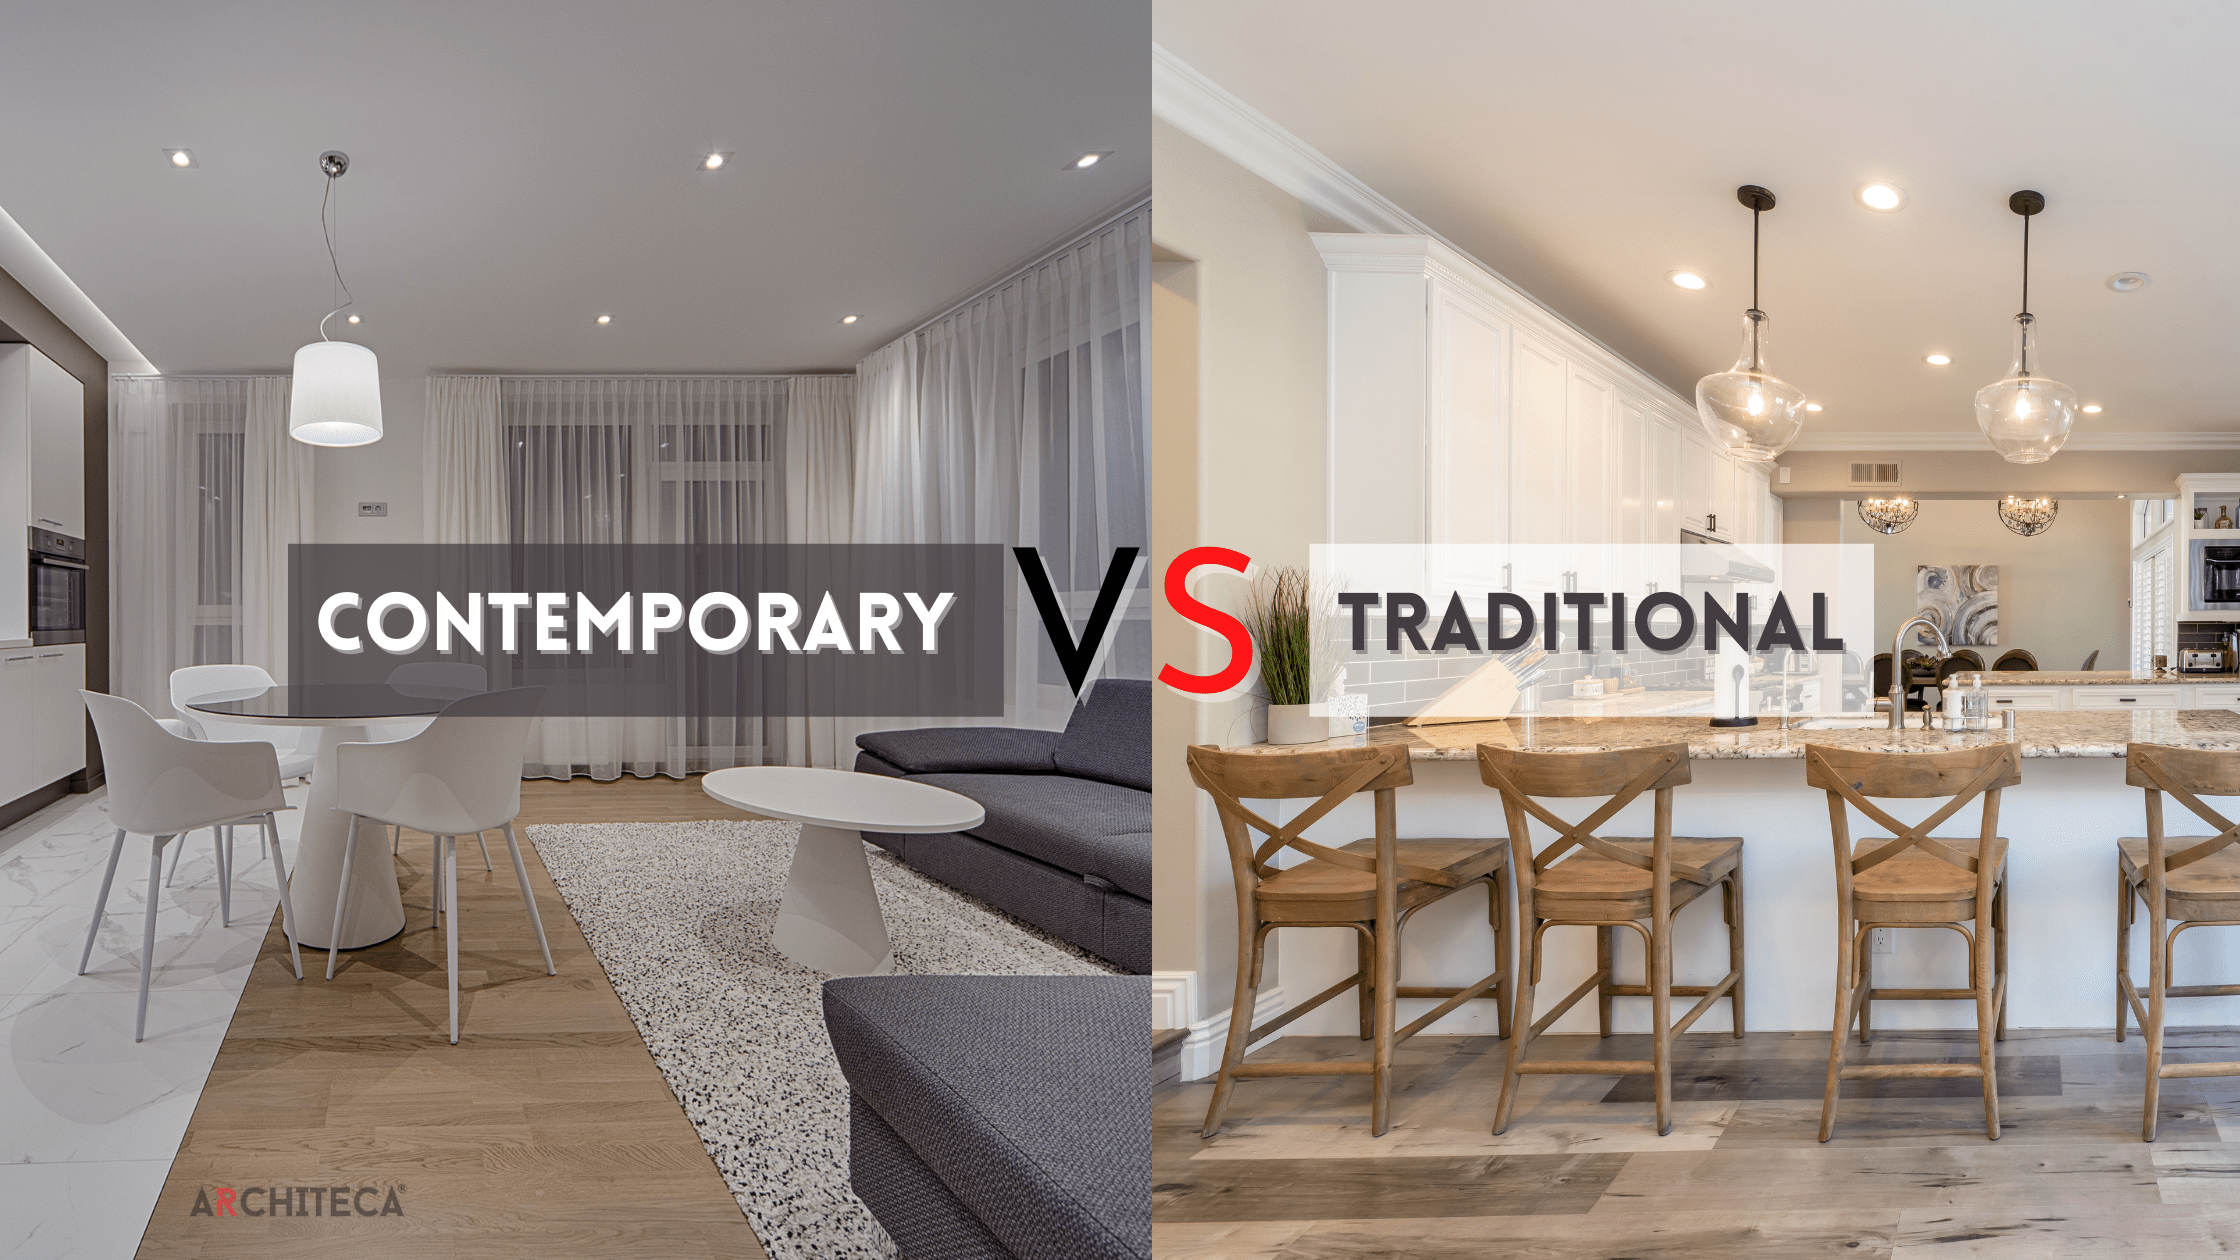 Contemporary house vs traditional house